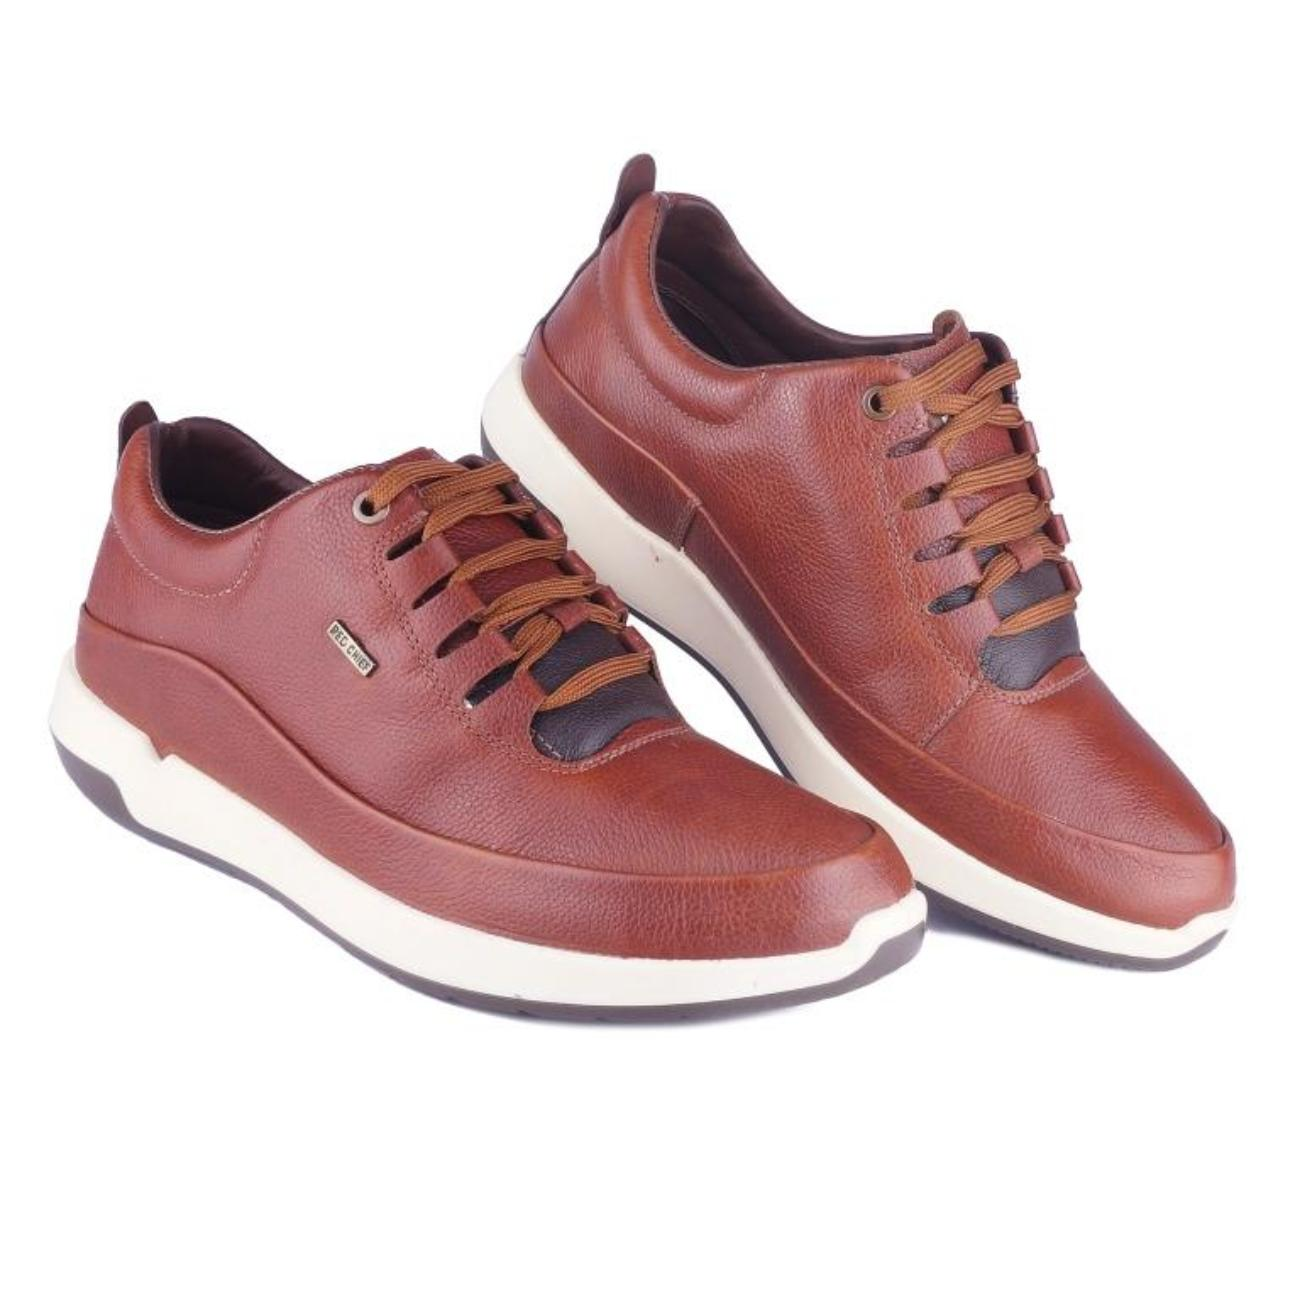 brown casual shoes top view